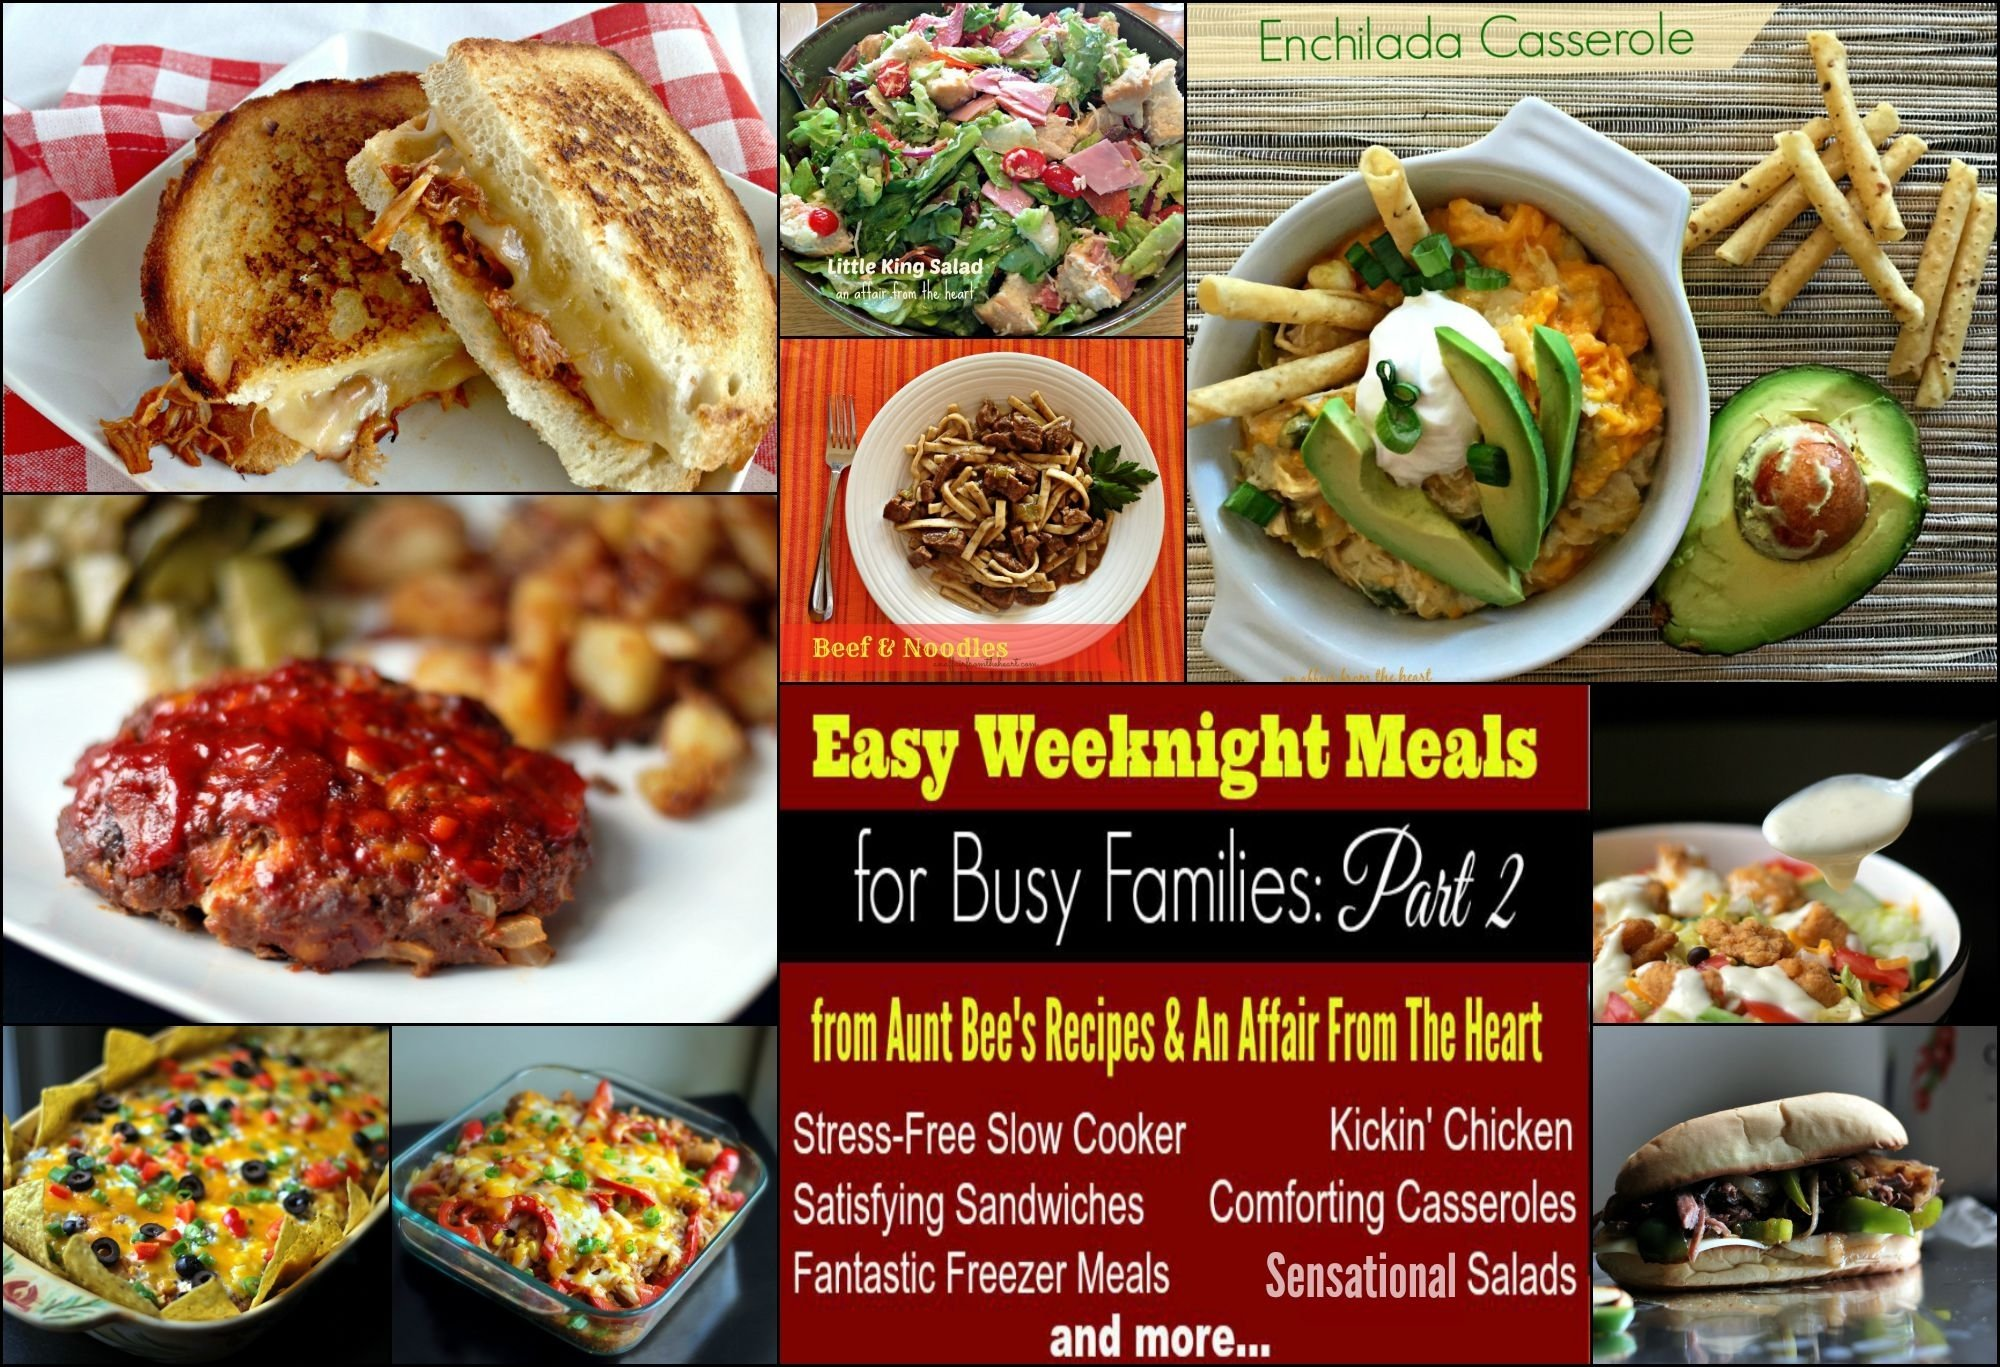 10 Unique Weeknight Dinner Ideas For Families easy weeknight meals for busy families part 2 aunt bees recipes 2021